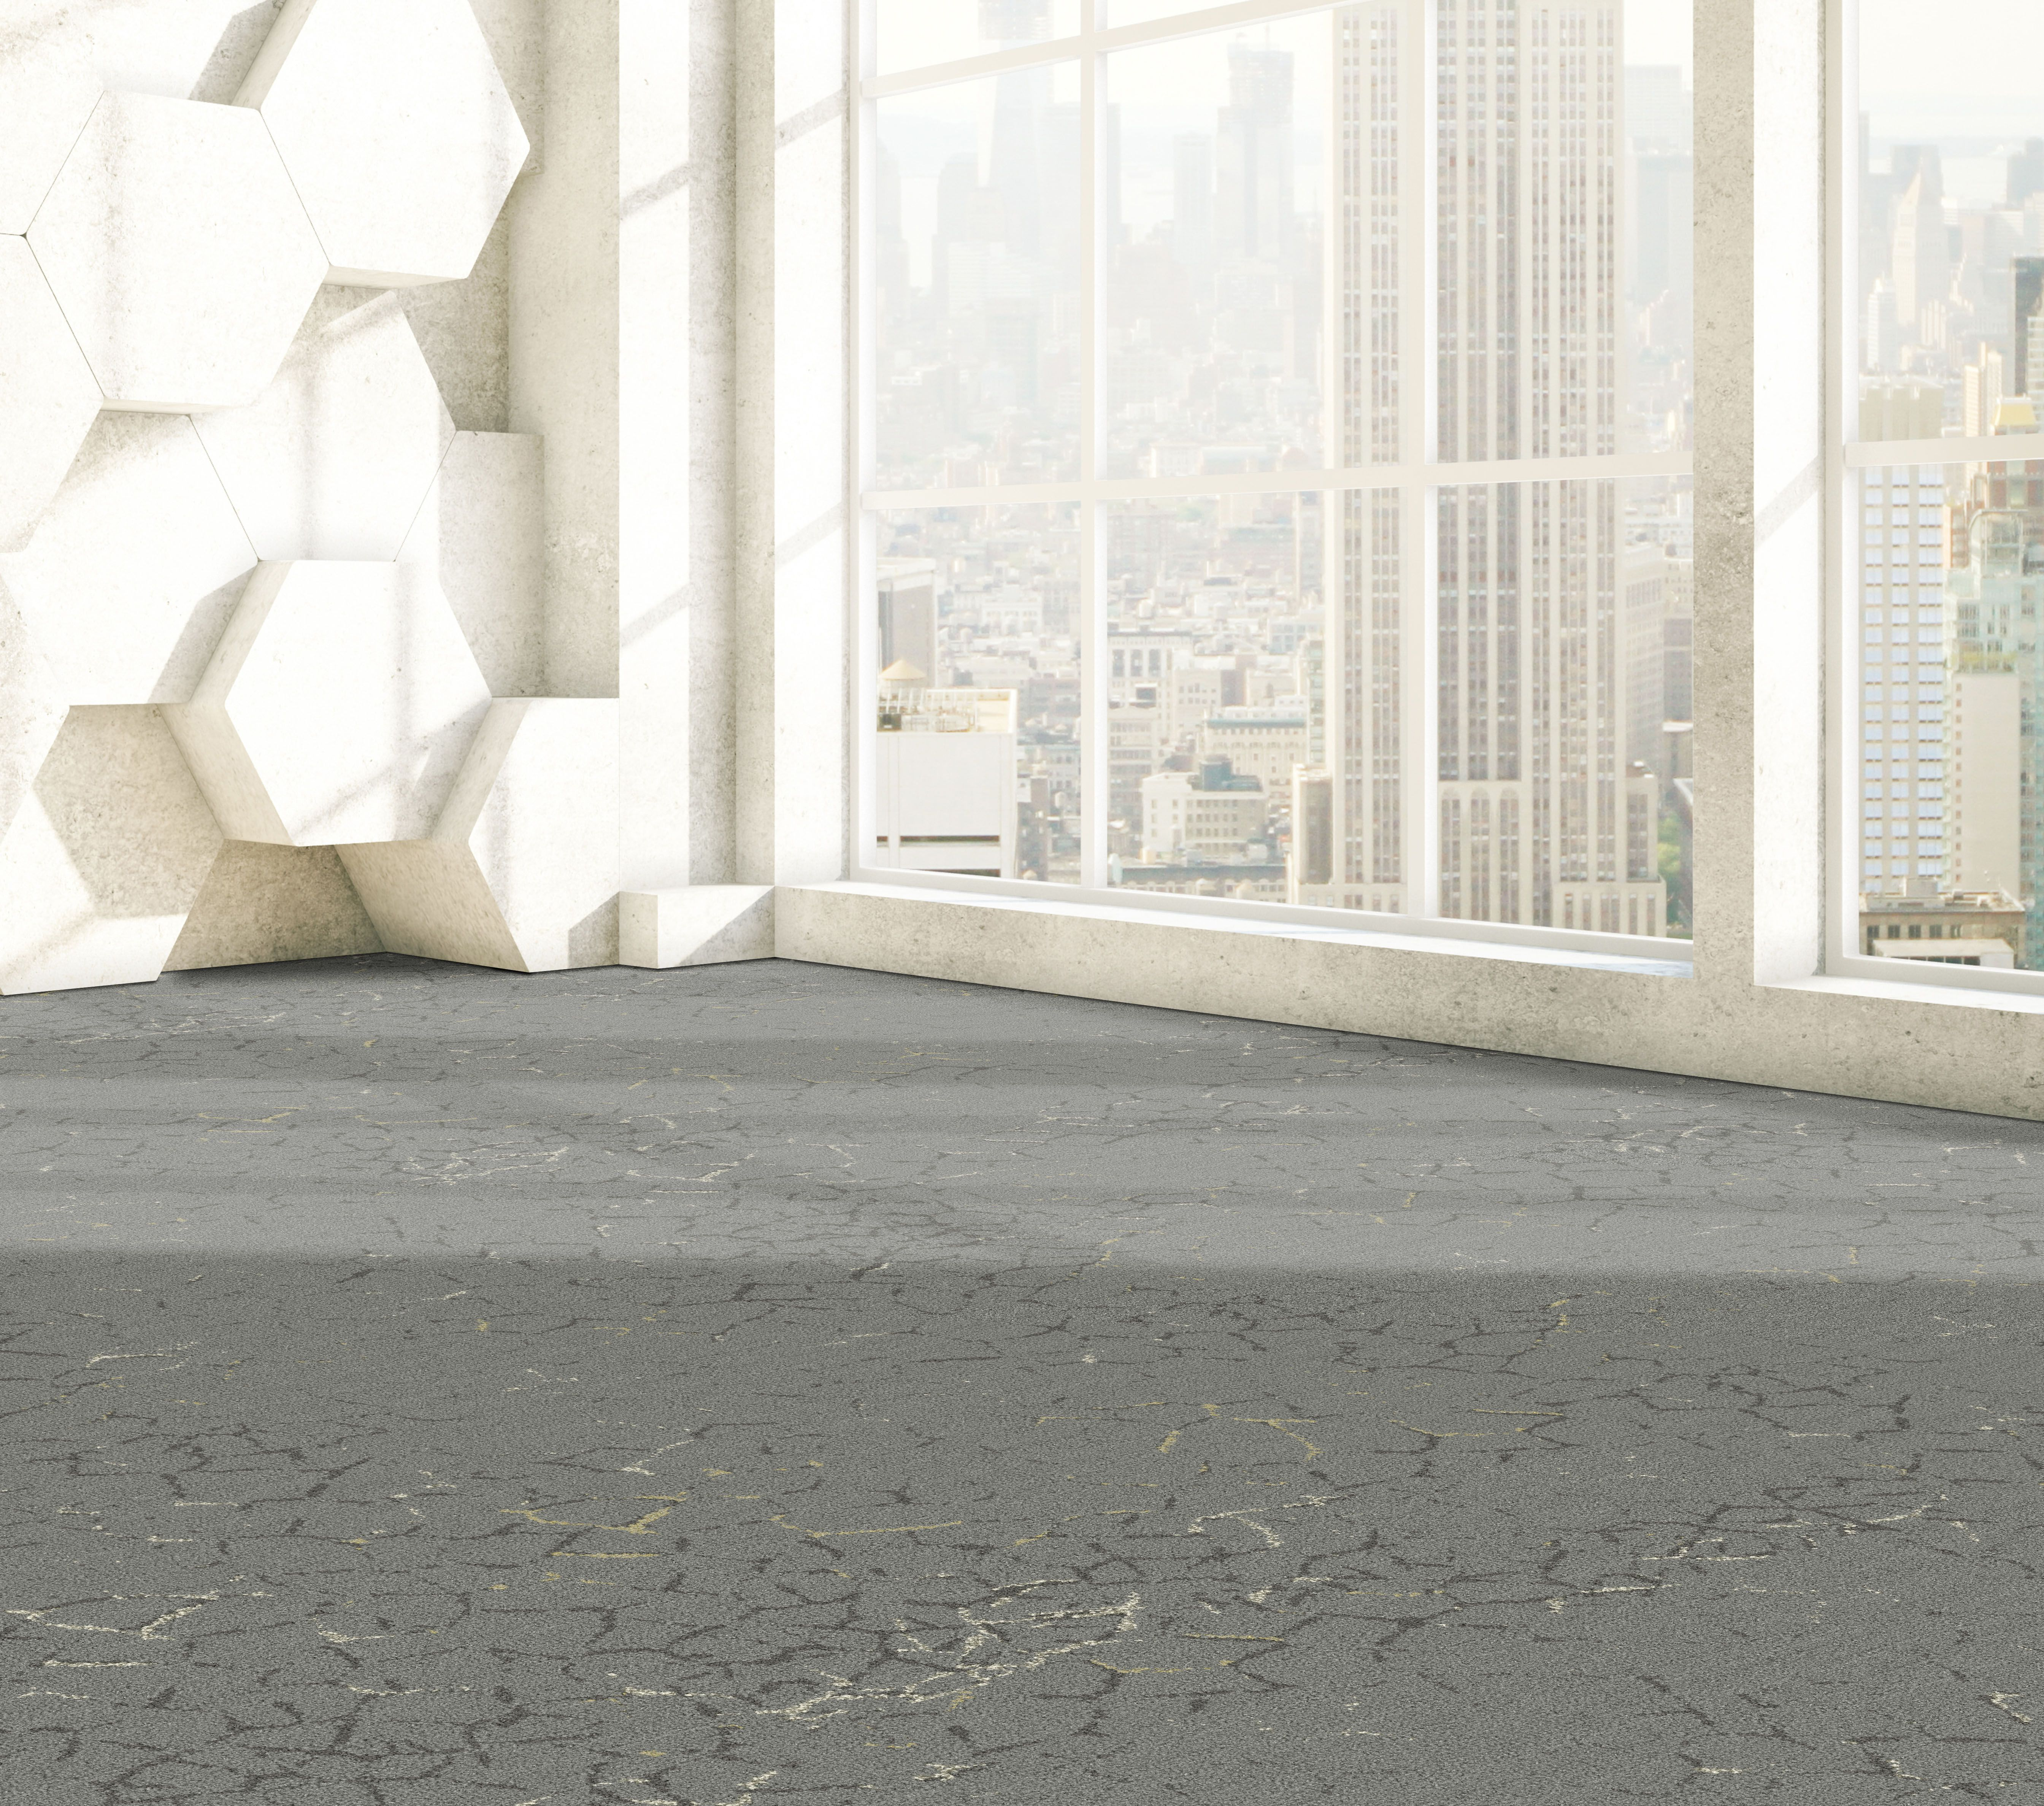 Design Notes Collection By Ef Contract Line Weight 18 X 36 Carpet Tile Color 56 Aqua Zing Commercial Carpet Carpet Tiles Commercial Carpet Tiles